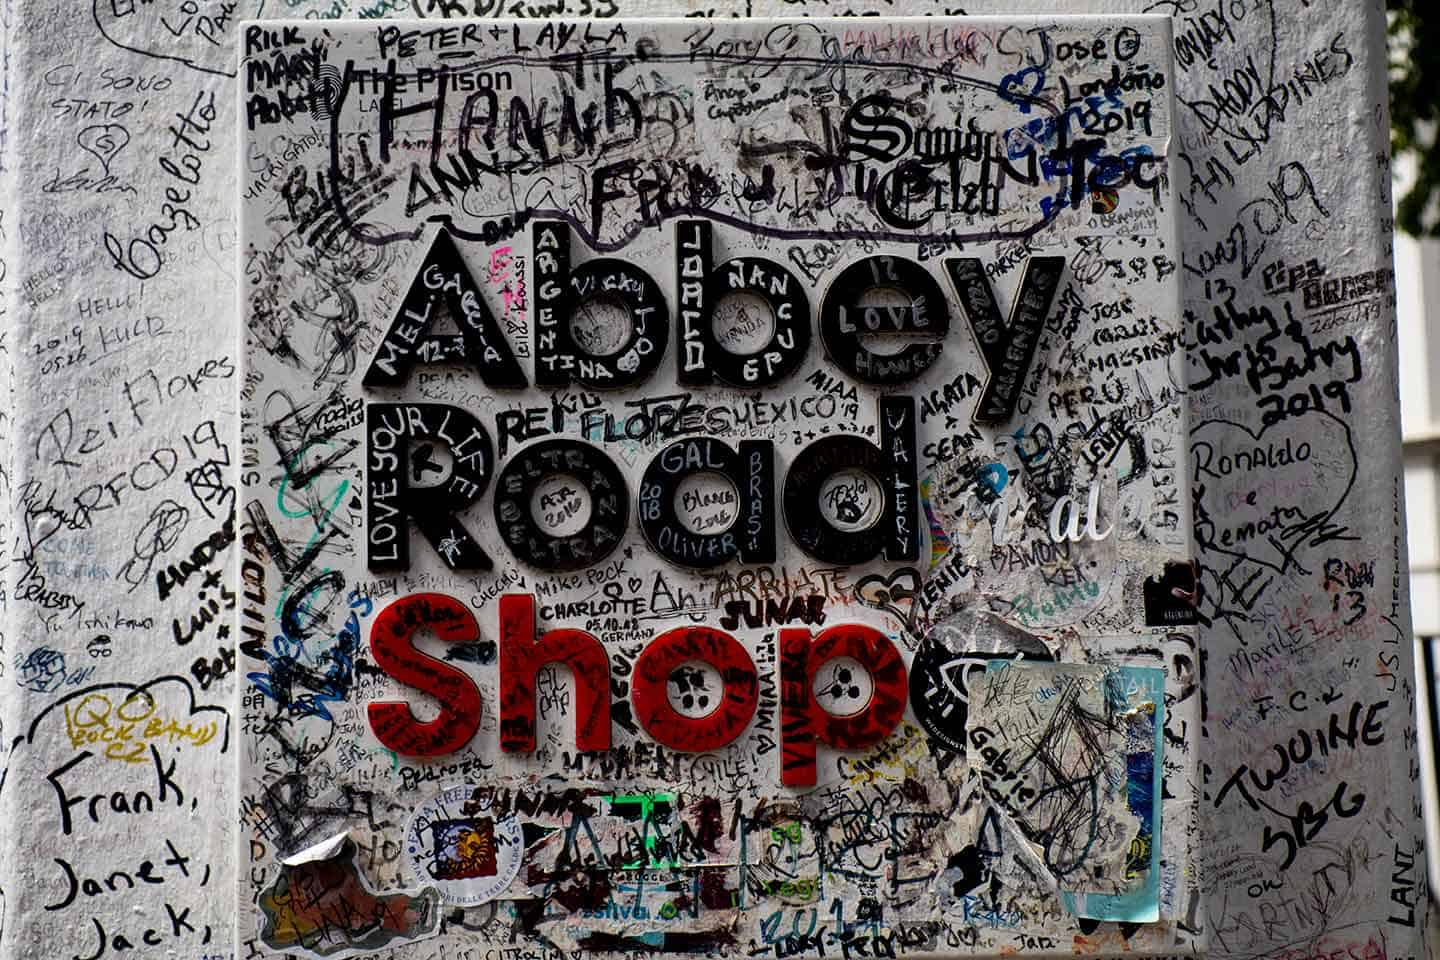 Image of the Abbey Road shop sign in London covered with graffiti